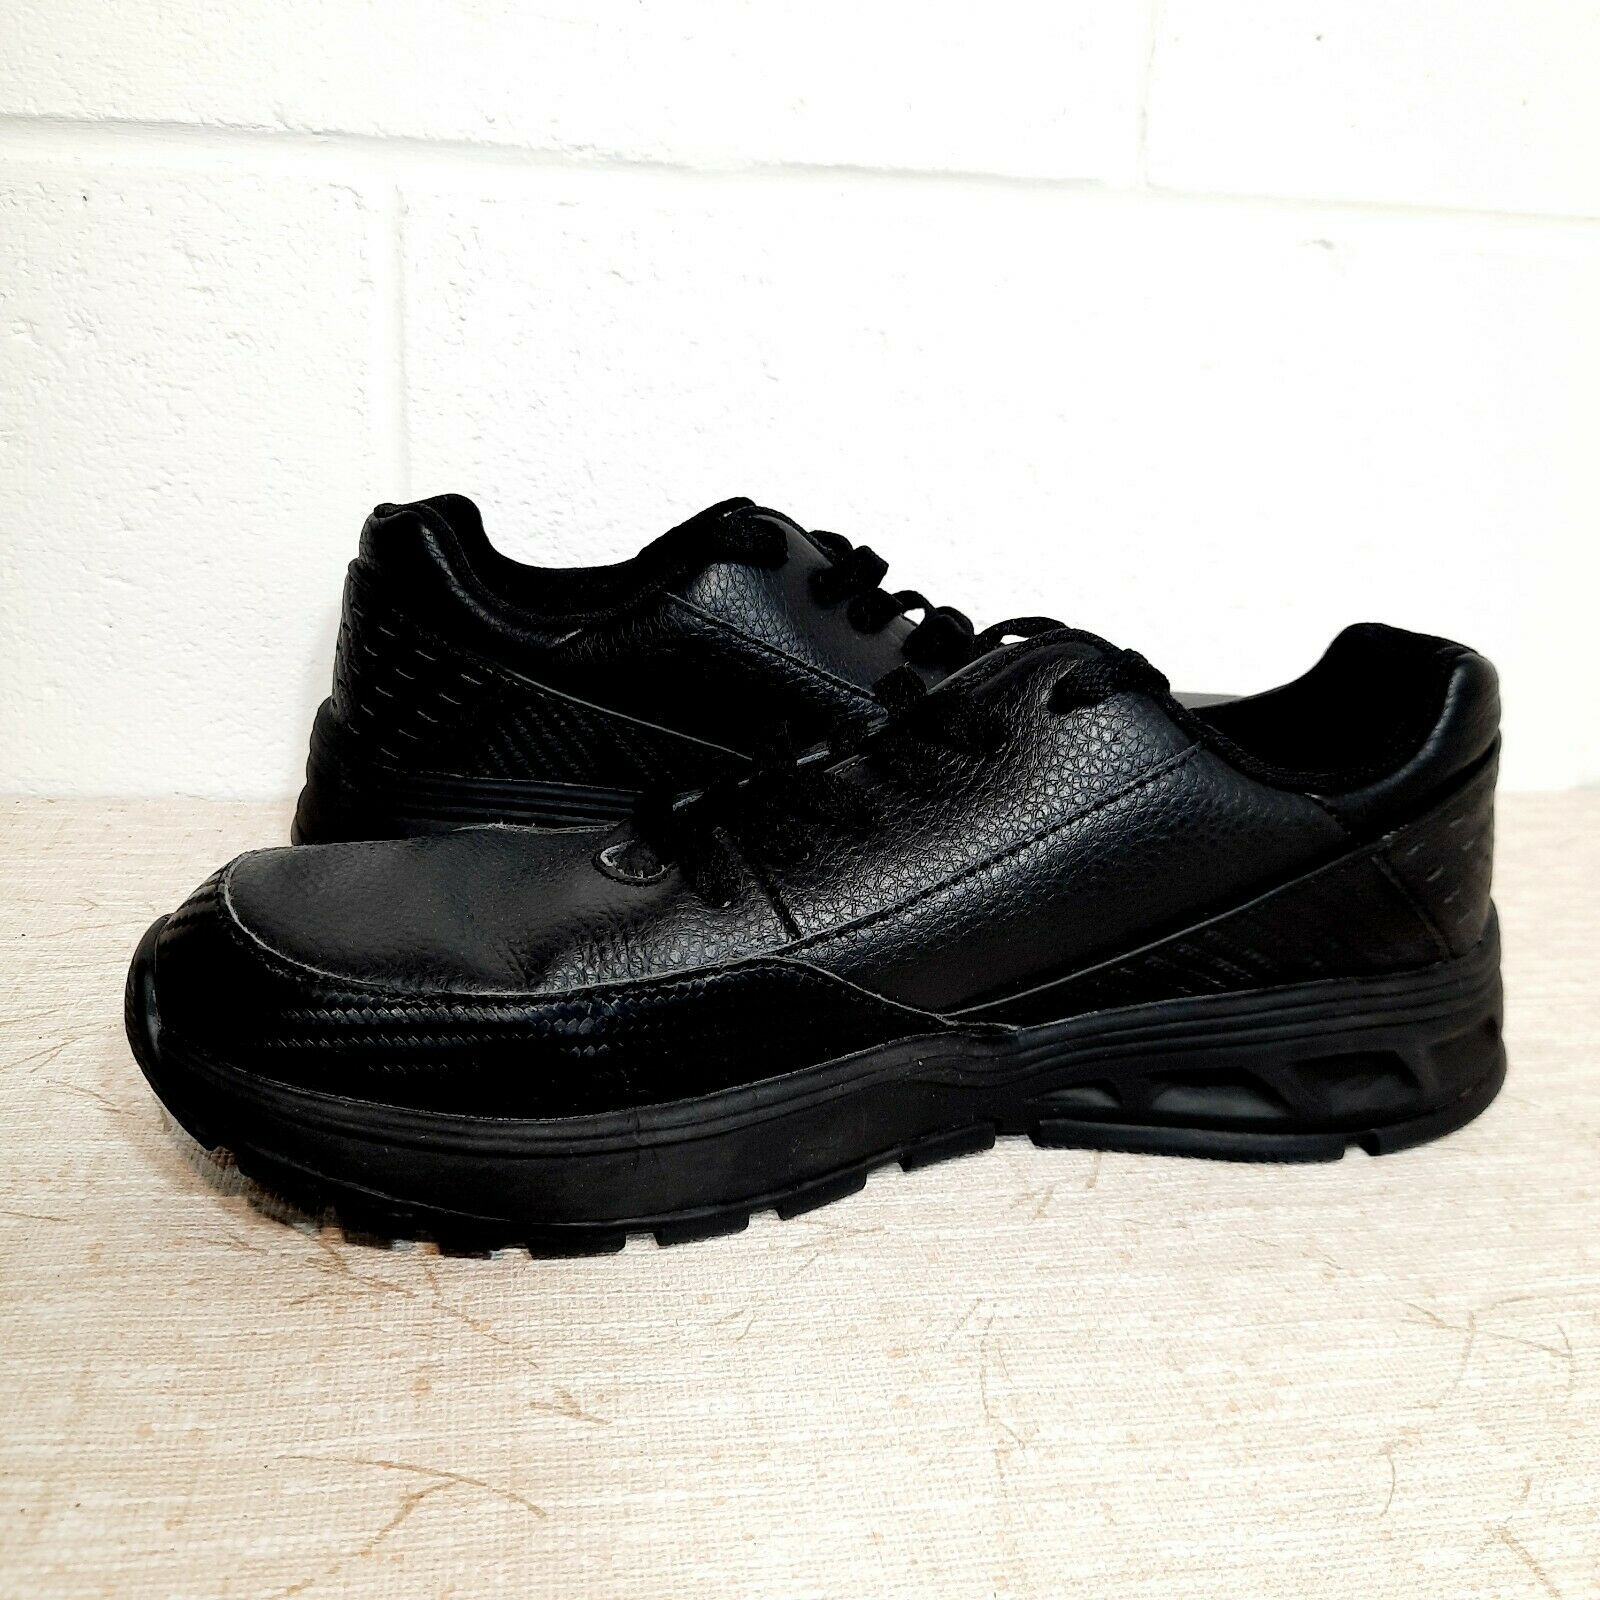 Infinity Cherokee Women's Slip Resistant Shoes Size 9 All Black Good Condition